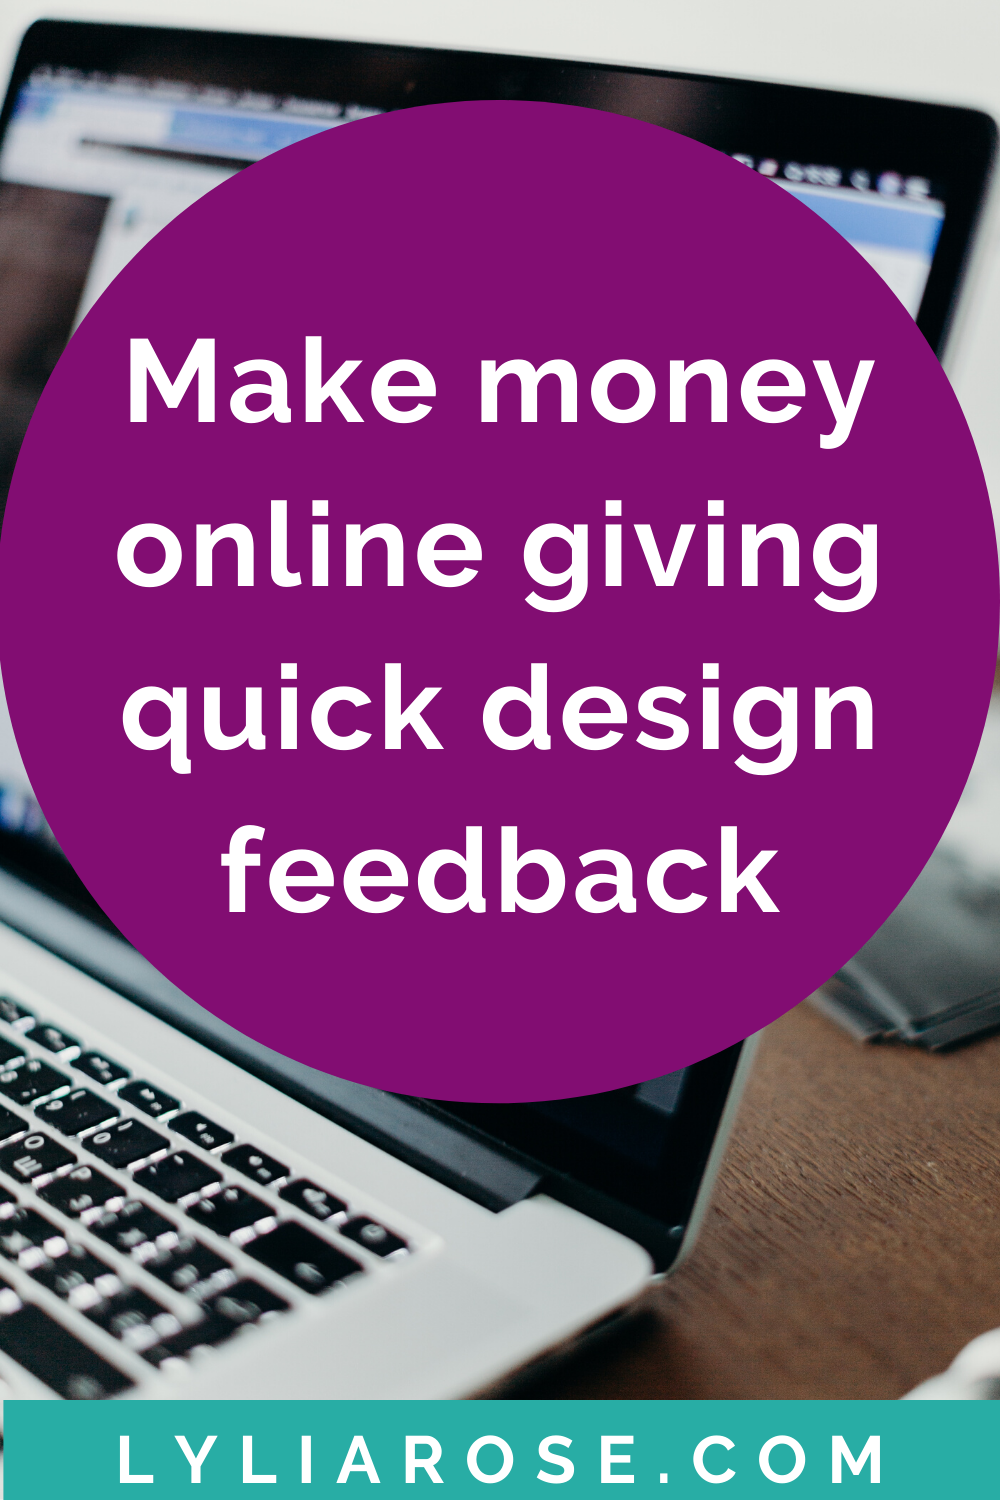 Usercrowd review_ Make money online giving quick design feedback